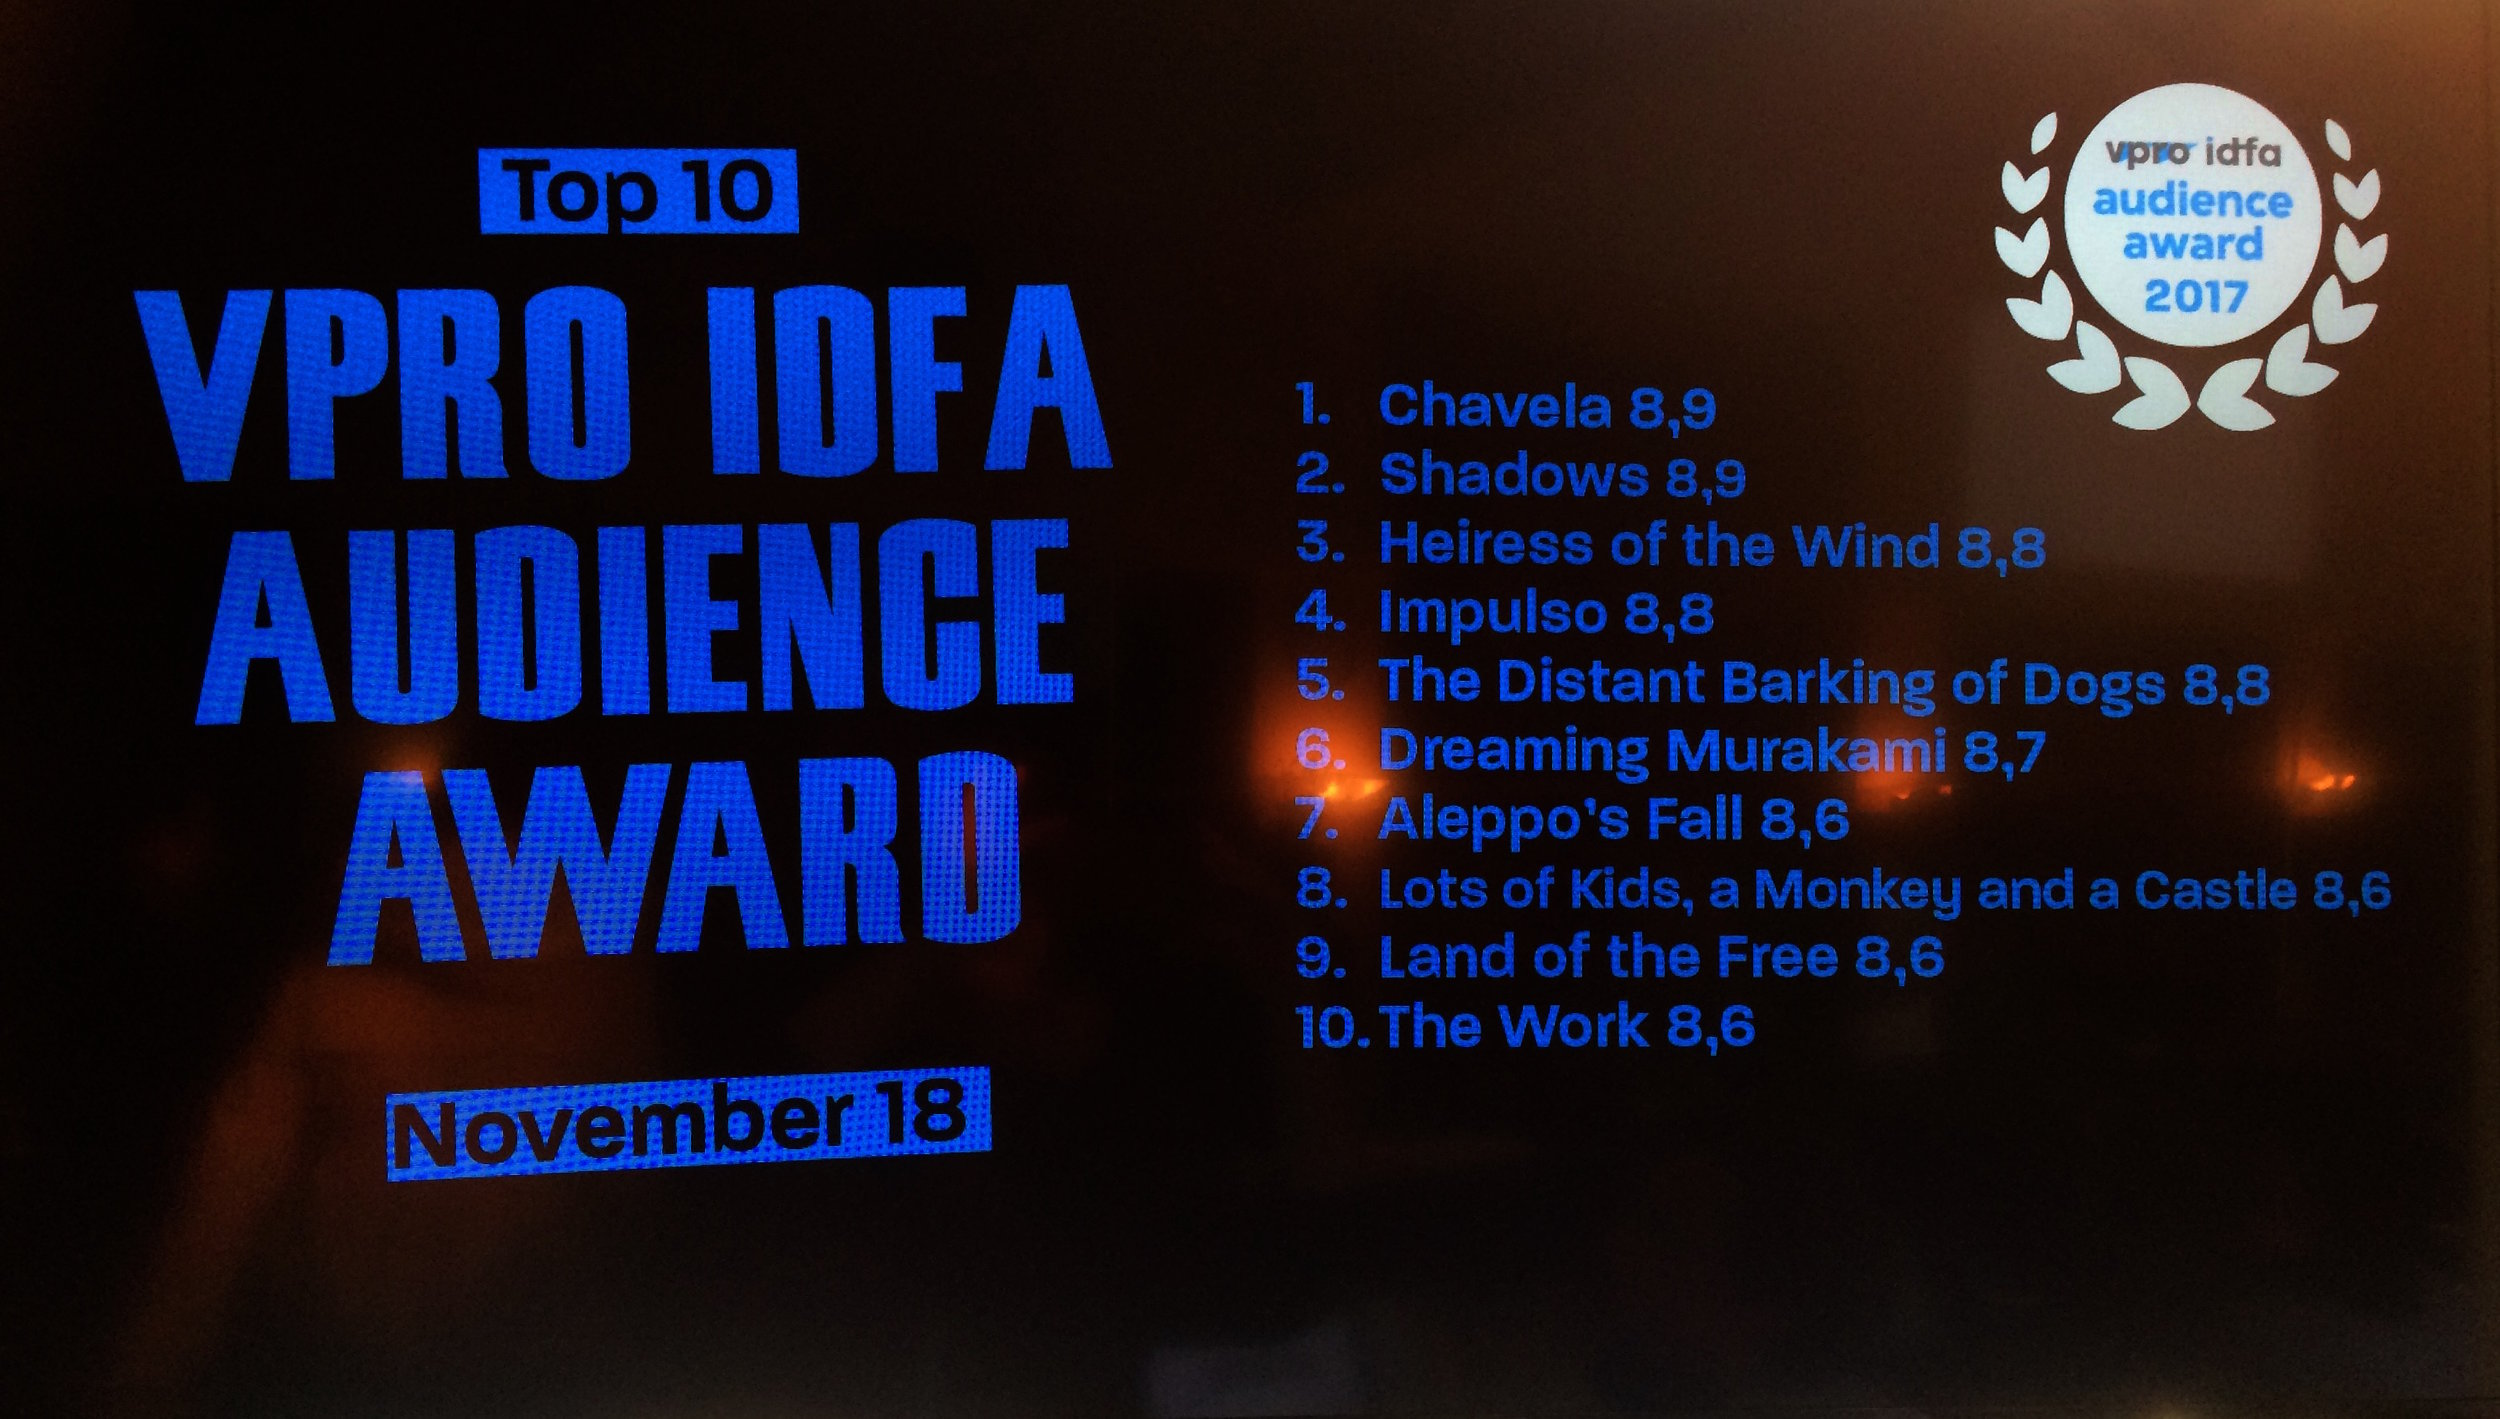 Audience poll top 10.jpg